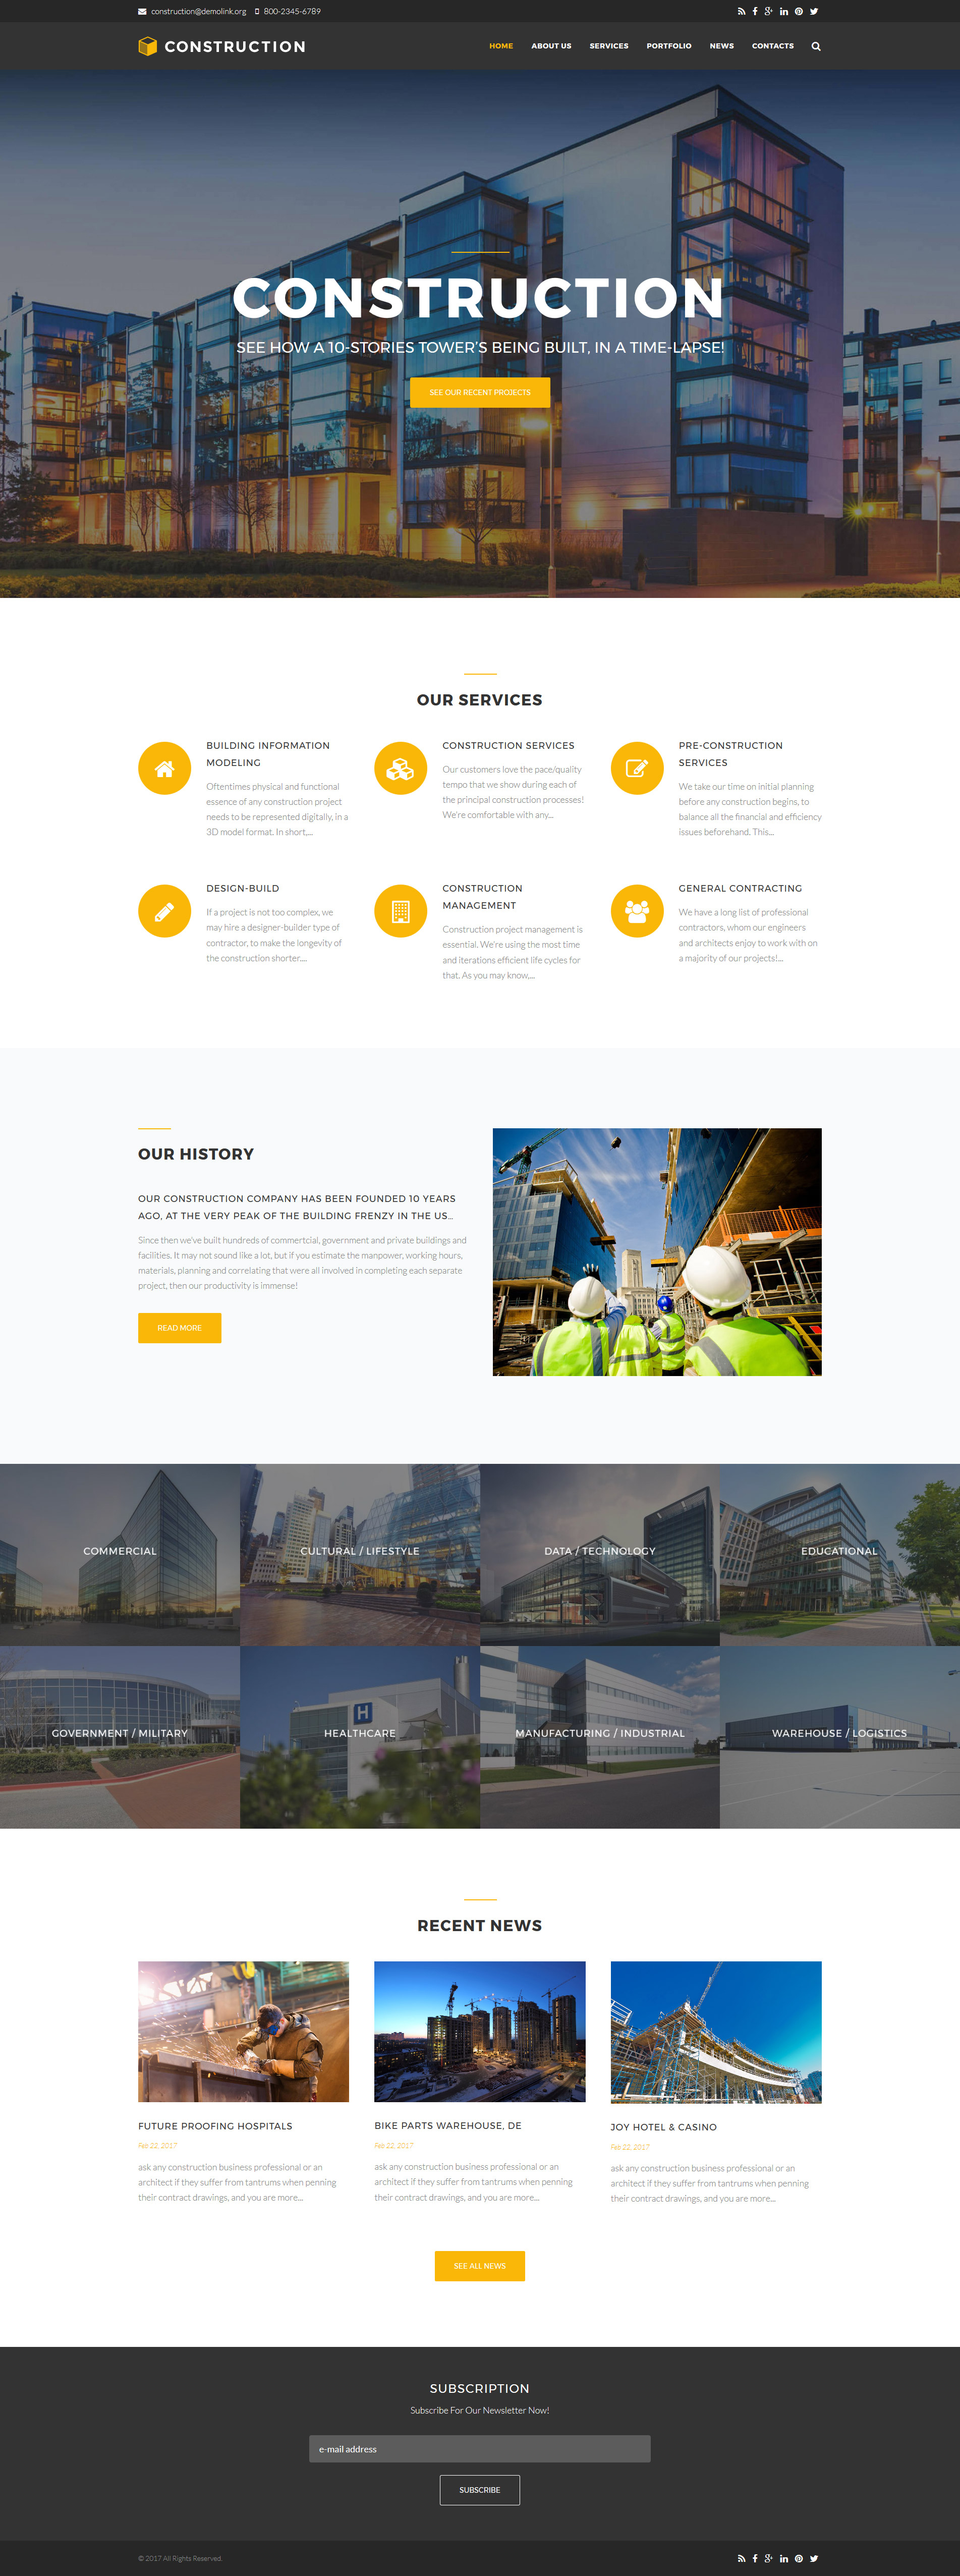 Website Design Template 62481 - repair renovation roofing electrician plumbing maintenance industrial business corporate professional